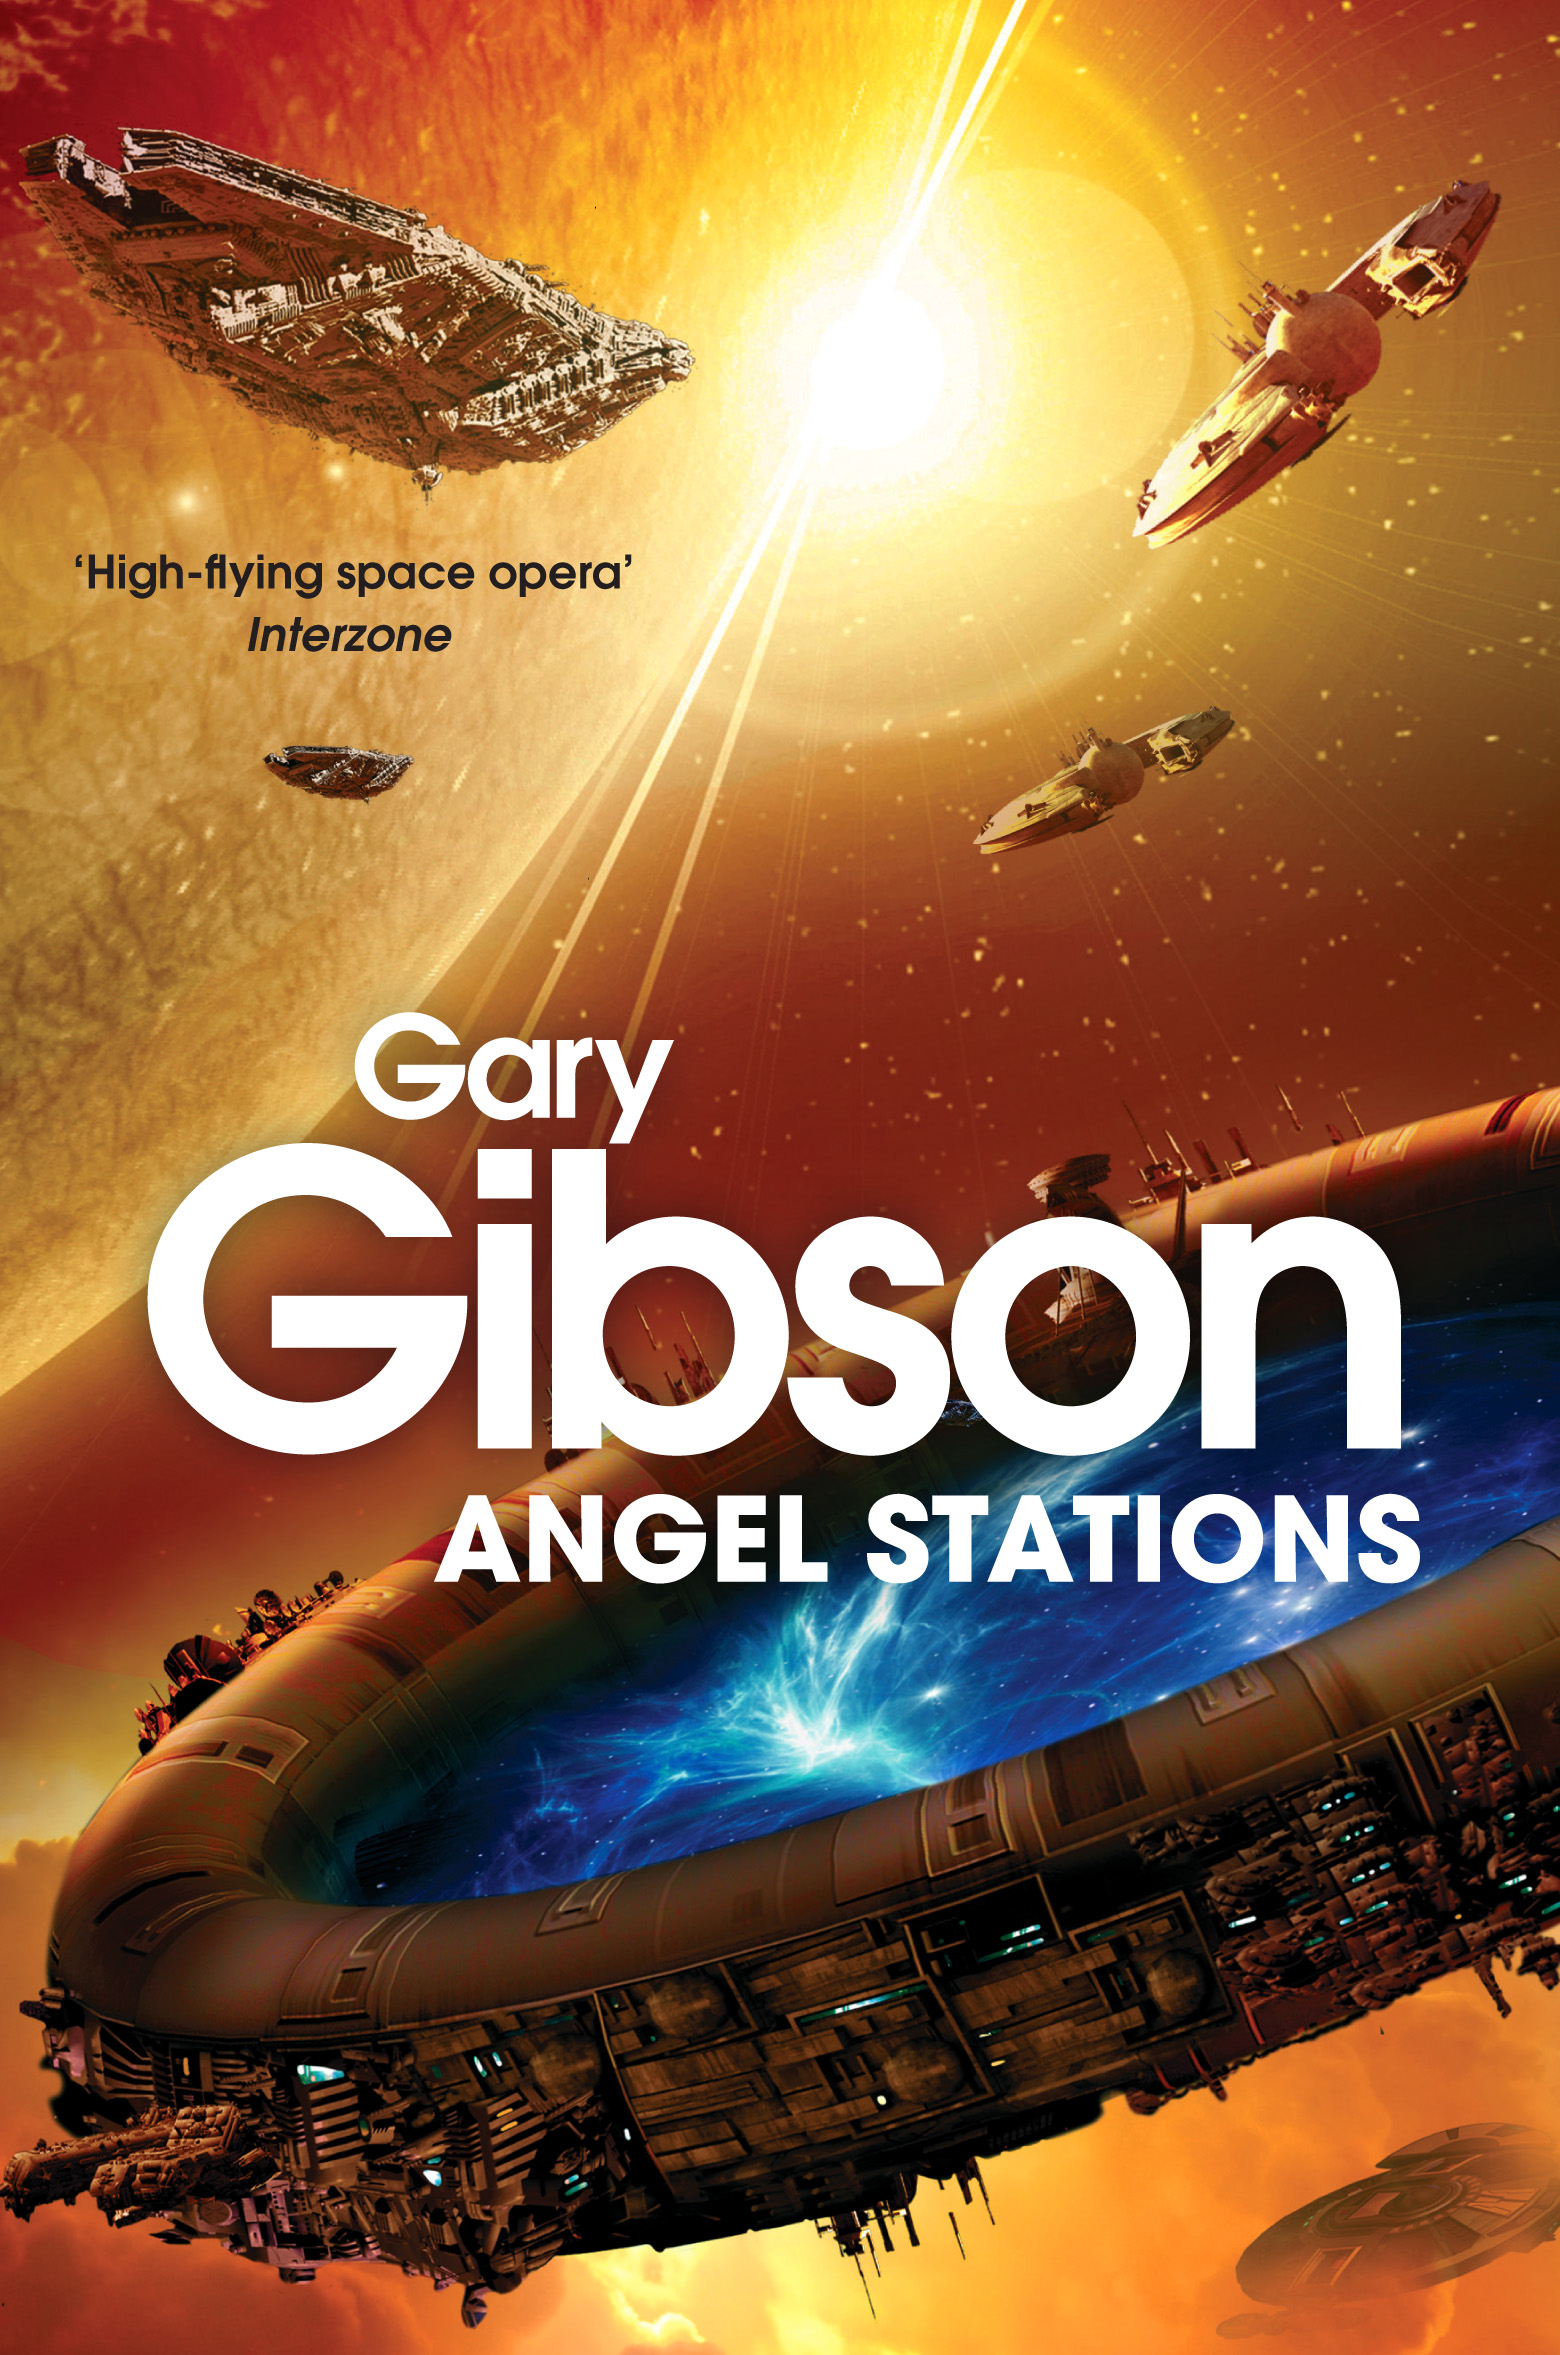 Angel Stations by Gary Gibson